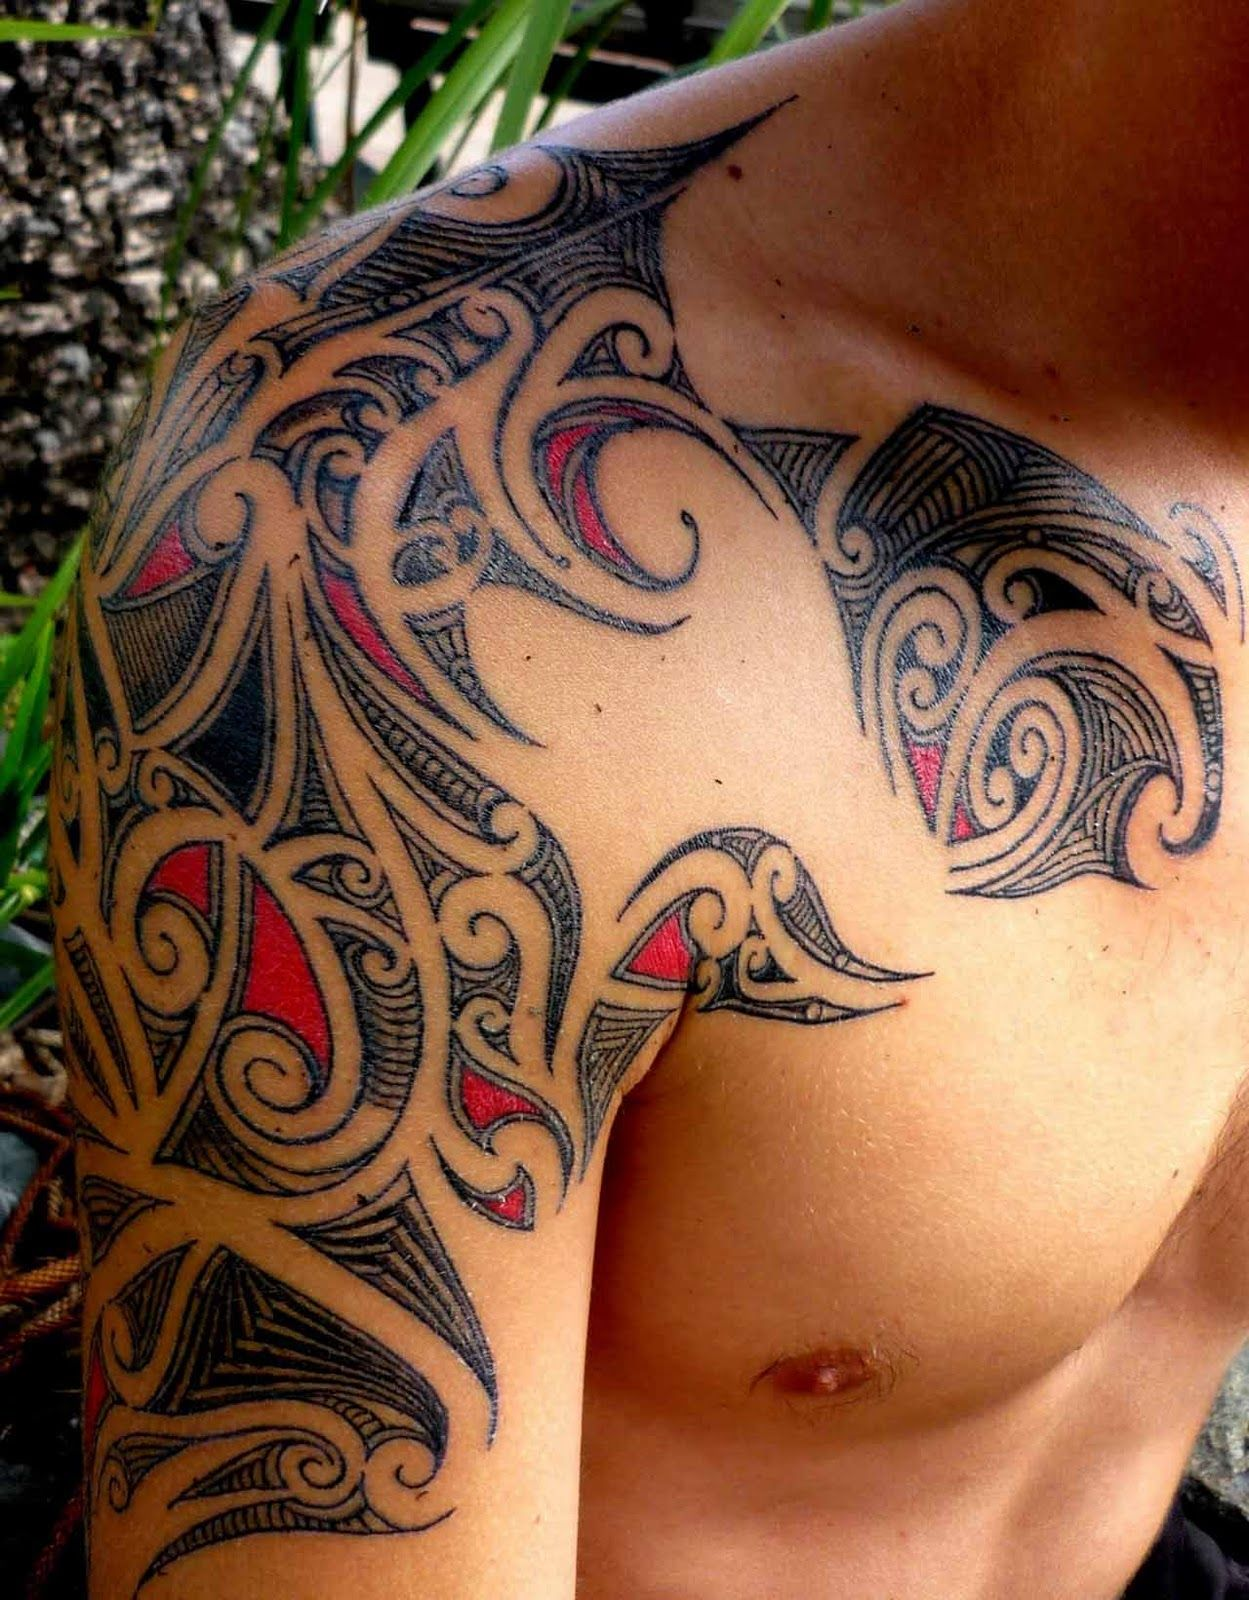 Best tribal tattoo gallery tribal tattoos common tattoo designs women - Top 10 Best Tribal Shoulder Tattoos For Men Are You Looking For Shoulder Tattoo Designs For Men Check Out My Favorite Selection Of Tribal Tattoo